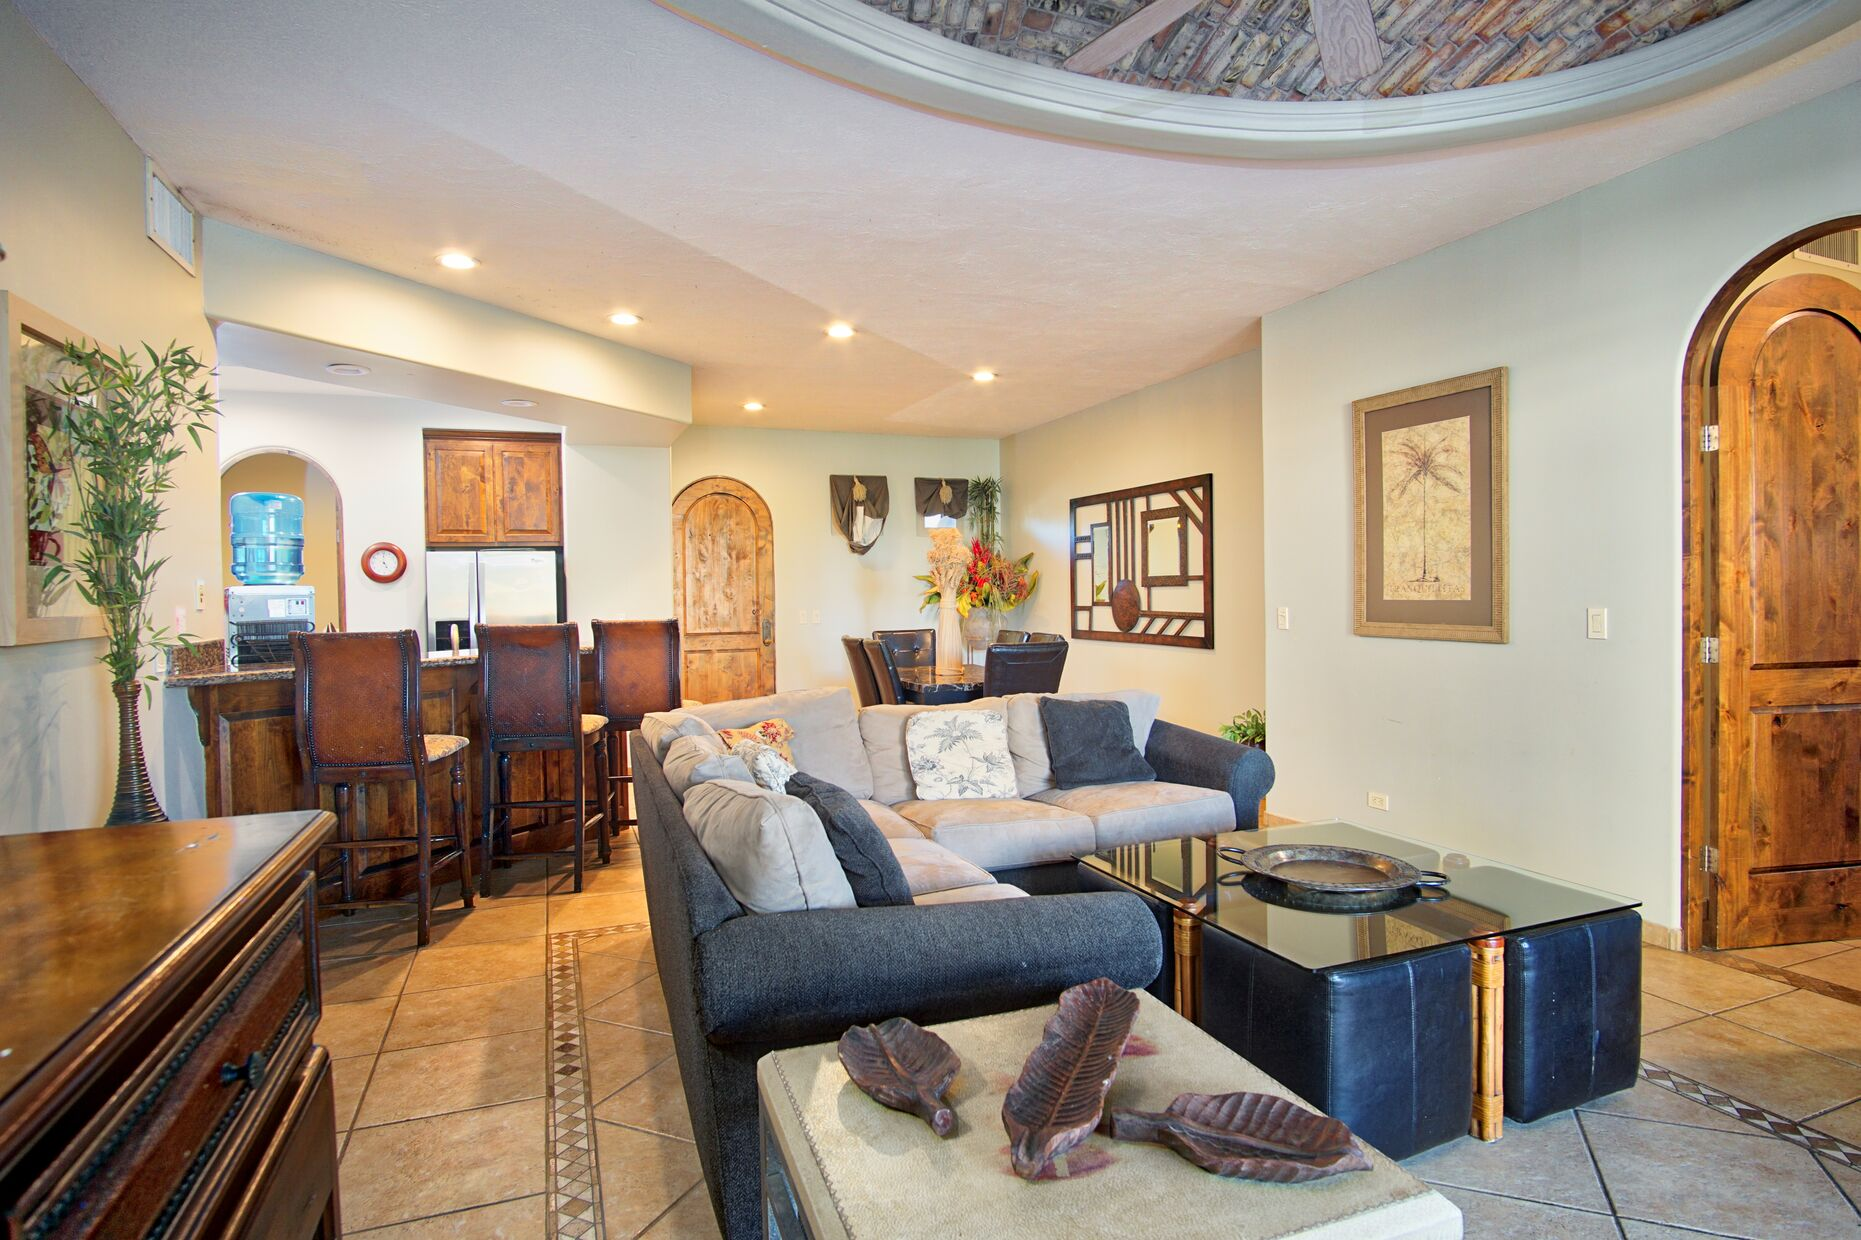 Main living area features brick dome